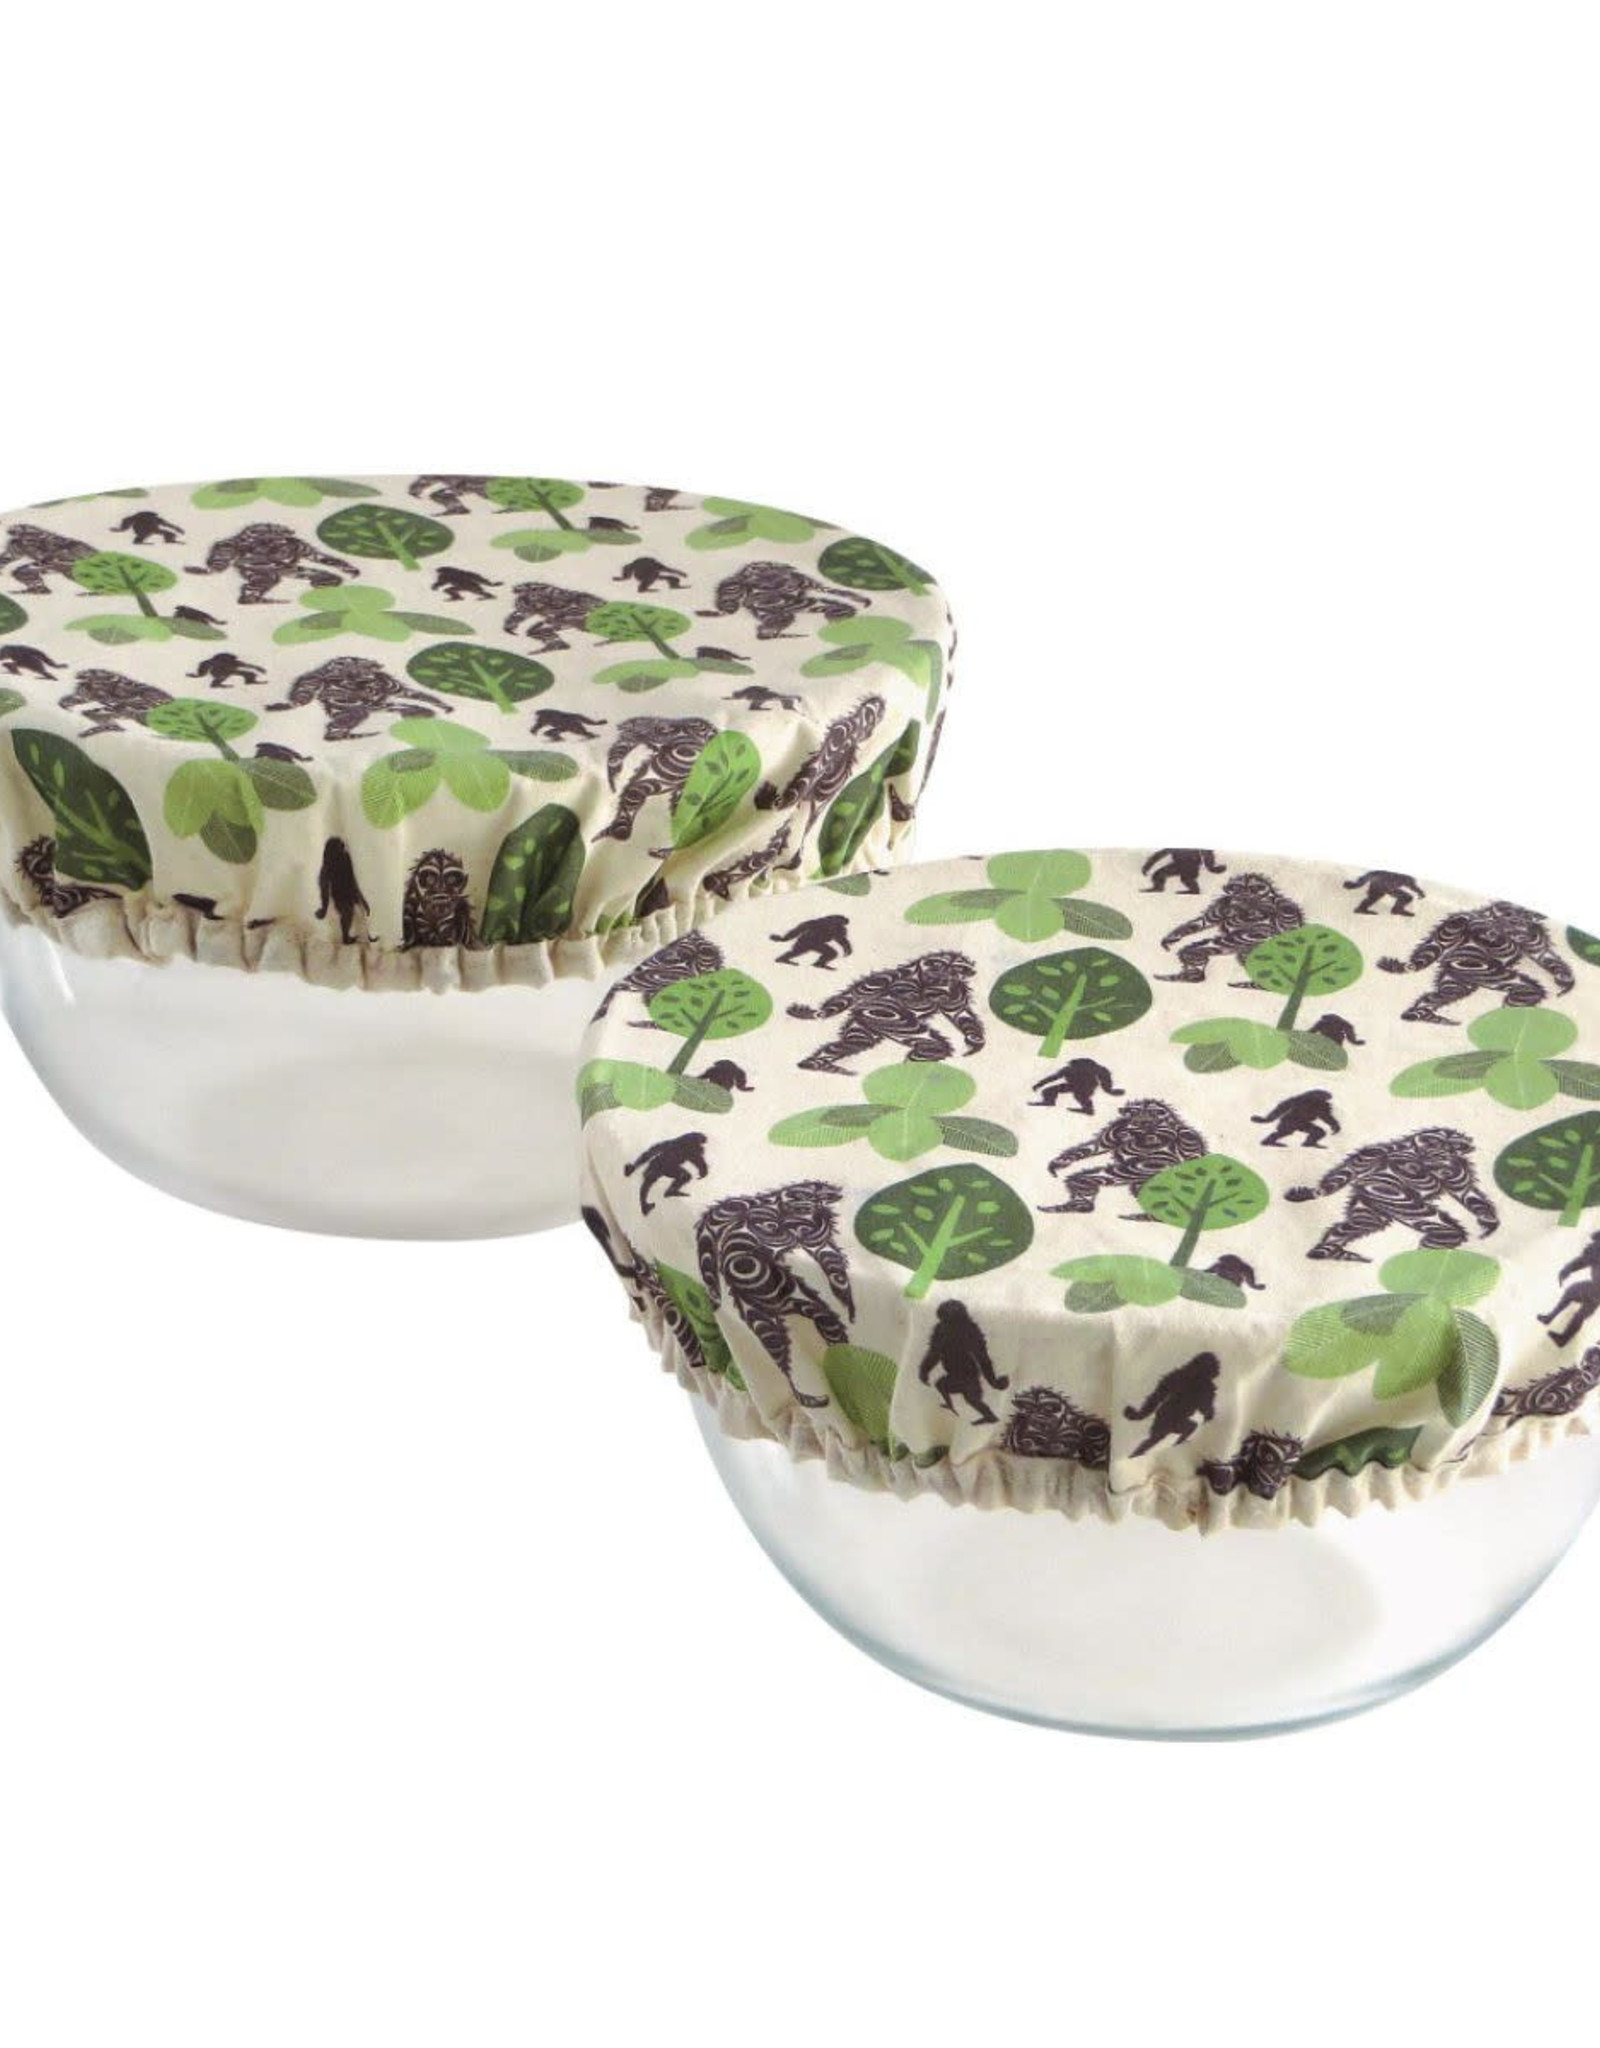 Set of 2 Reusable Bowl Covers Sasquatch by Francis Horne Sr.